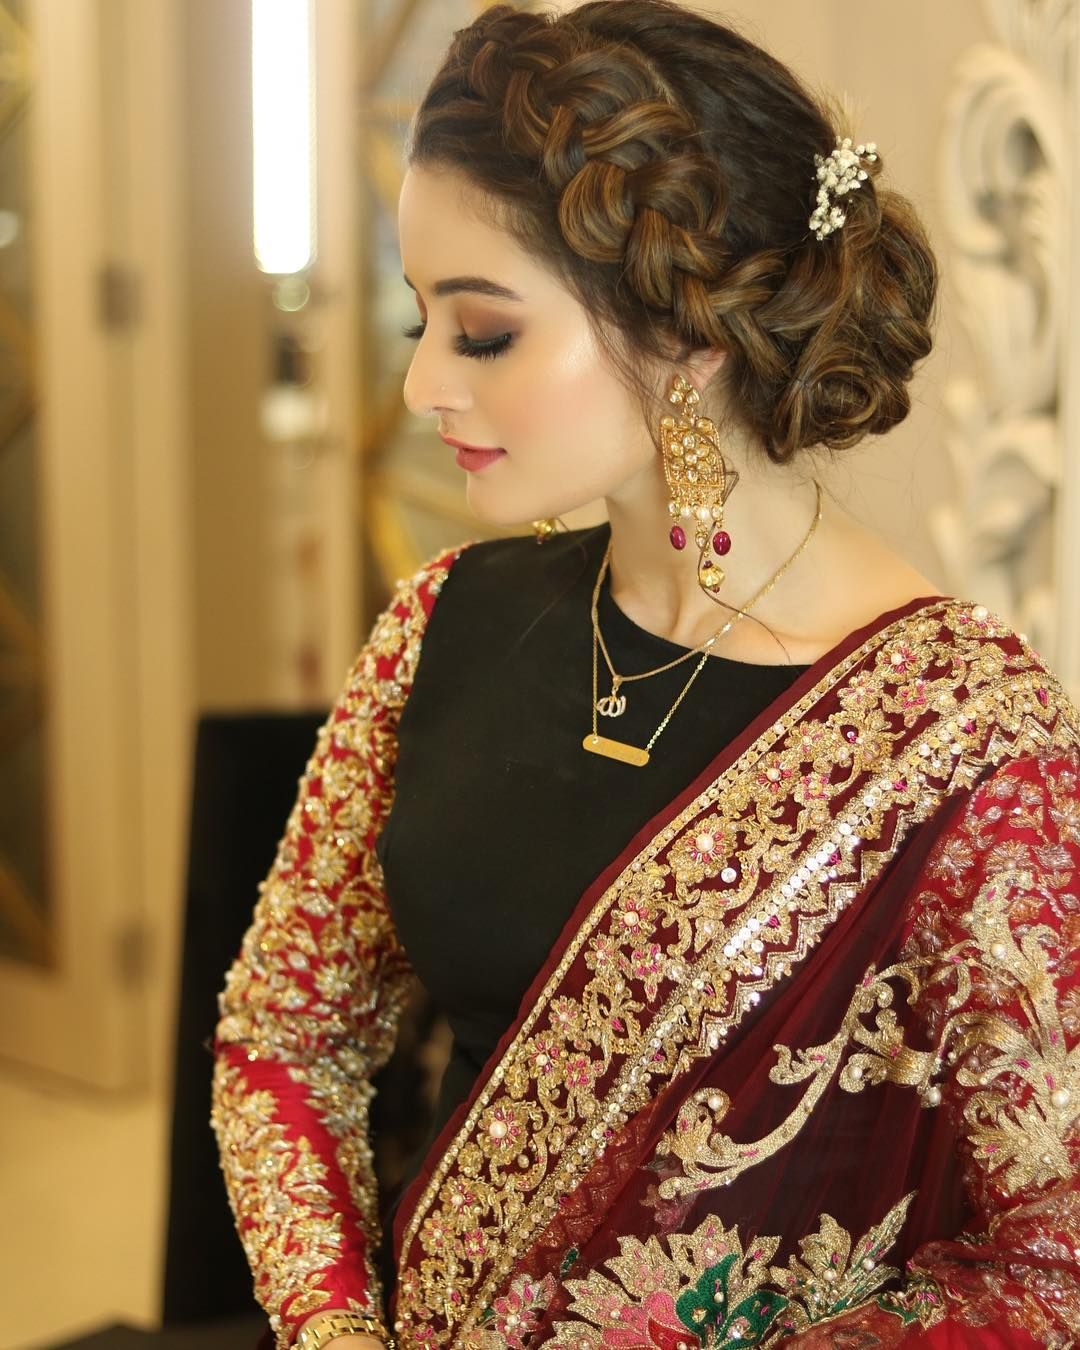 Another Day Another Stunning Look Aimankhan Official Dressed In Alixeeshantheat Pakistani Bridal Makeup Pakistani Bridal Dresses Pakistani Wedding Outfits